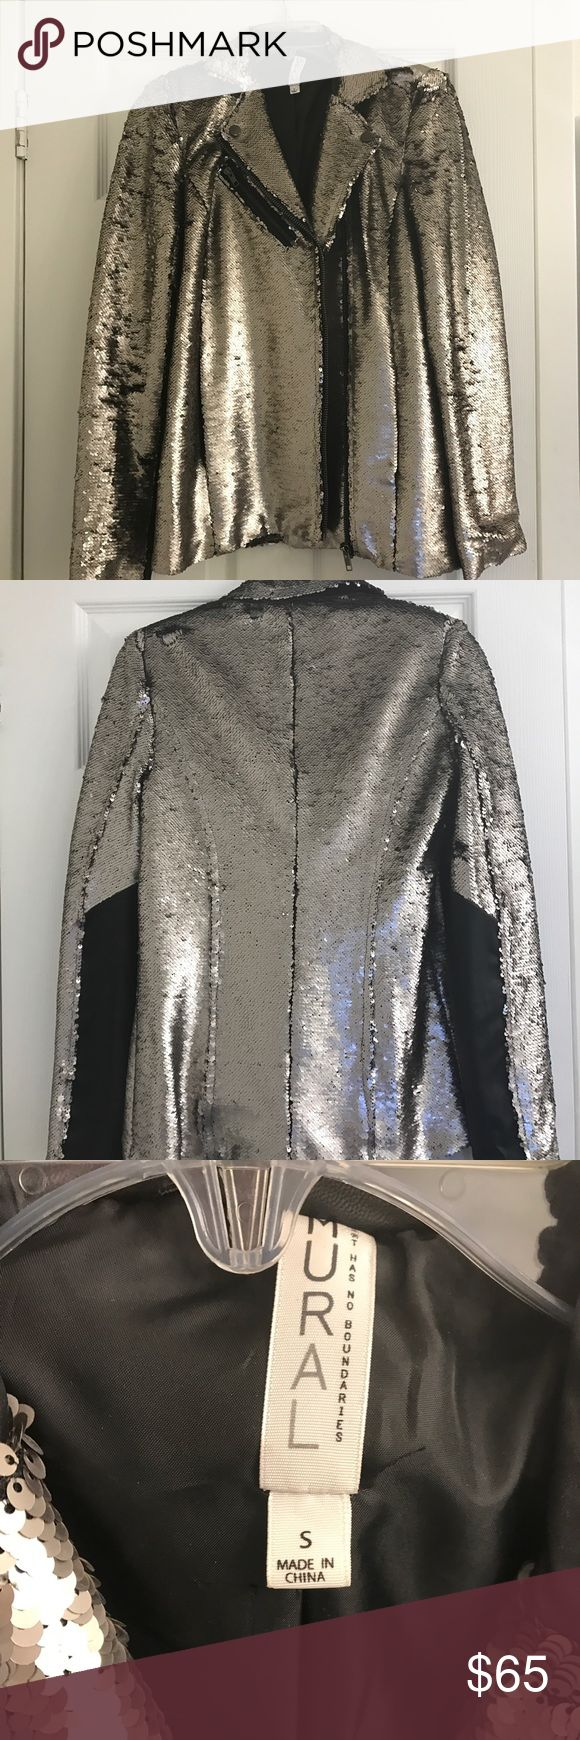 Mural sequined blazer size Small Pewter/silver with leather on sleeves mural Jackets & Coats Blazers